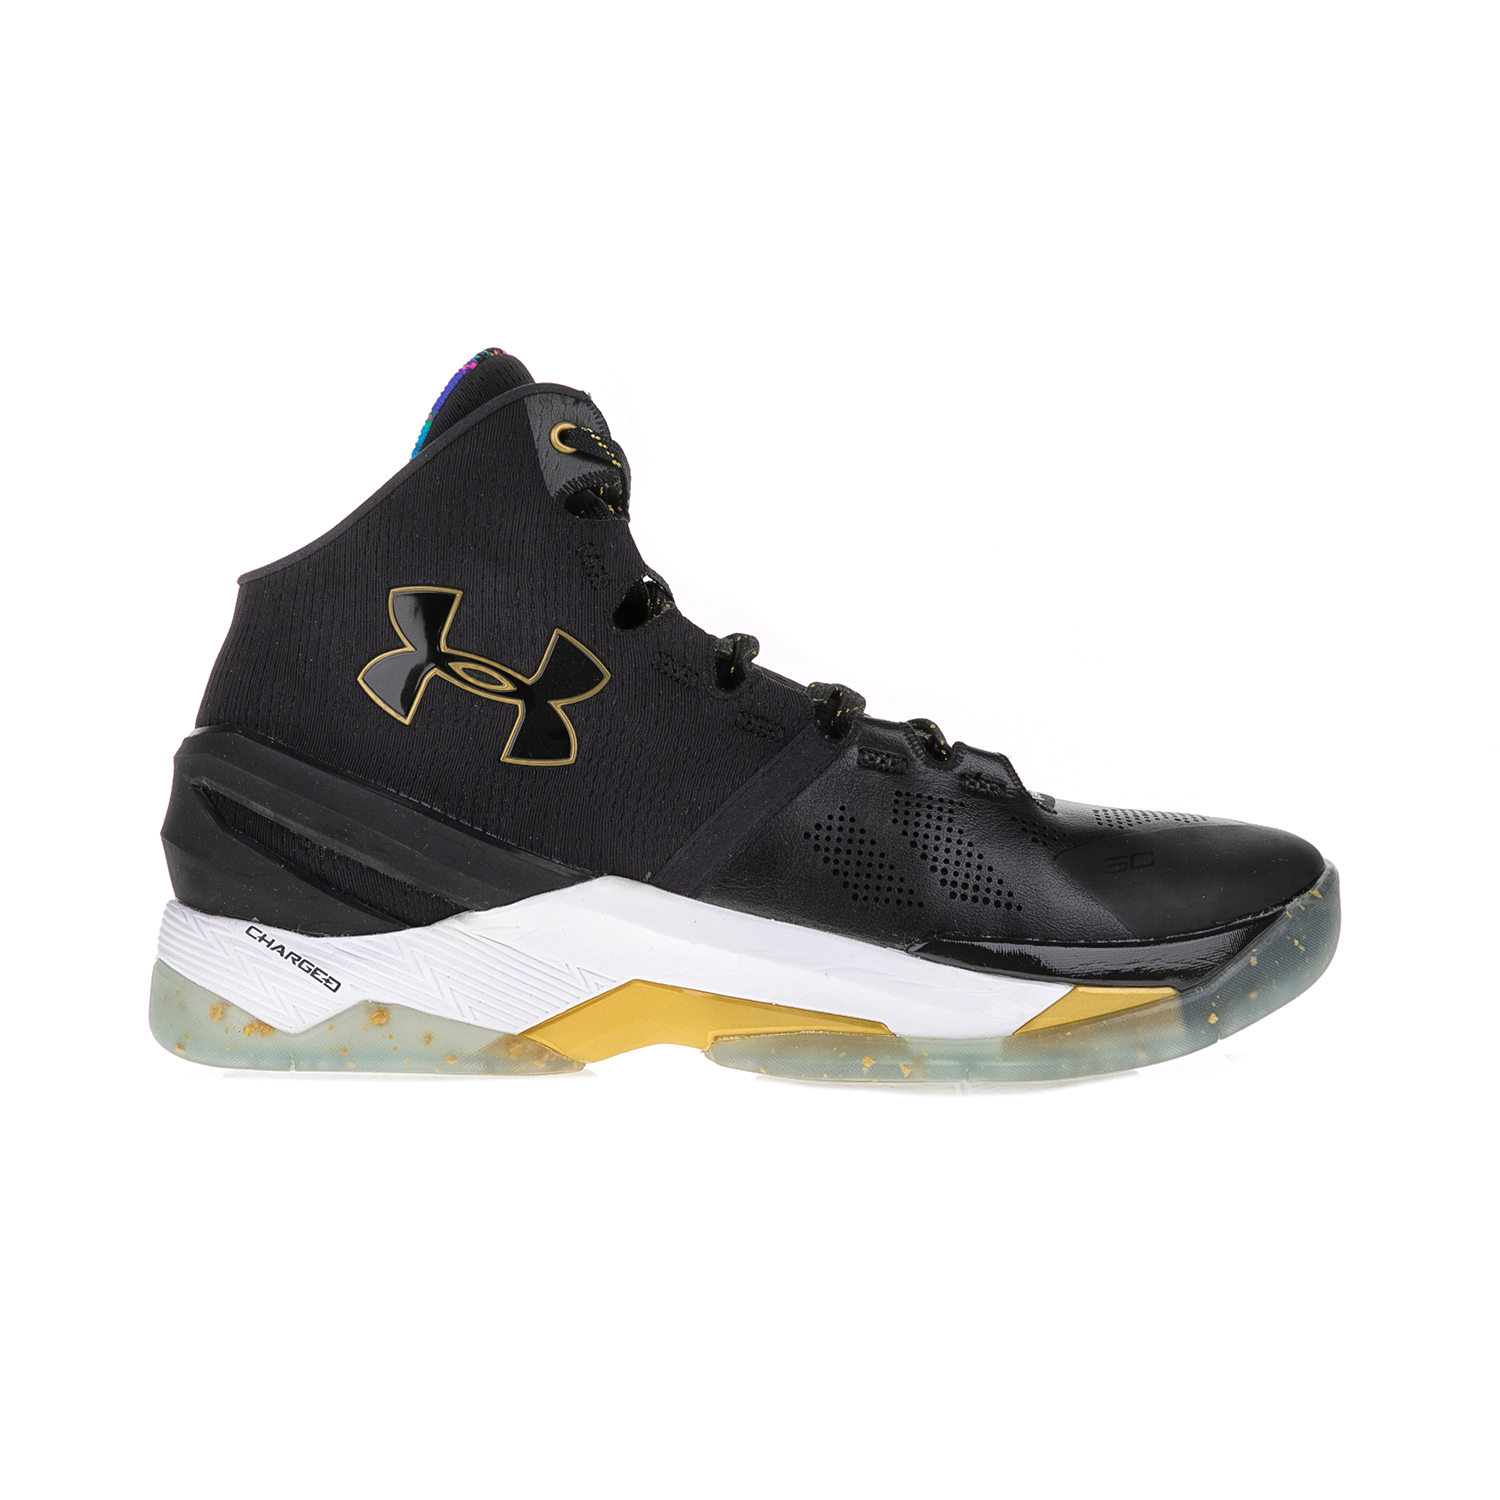 UNDER ARMOUR – Ανδρικά παπούτσια μπάσκετ UNDER ARMOUR CURRY 2 LE μαύρα